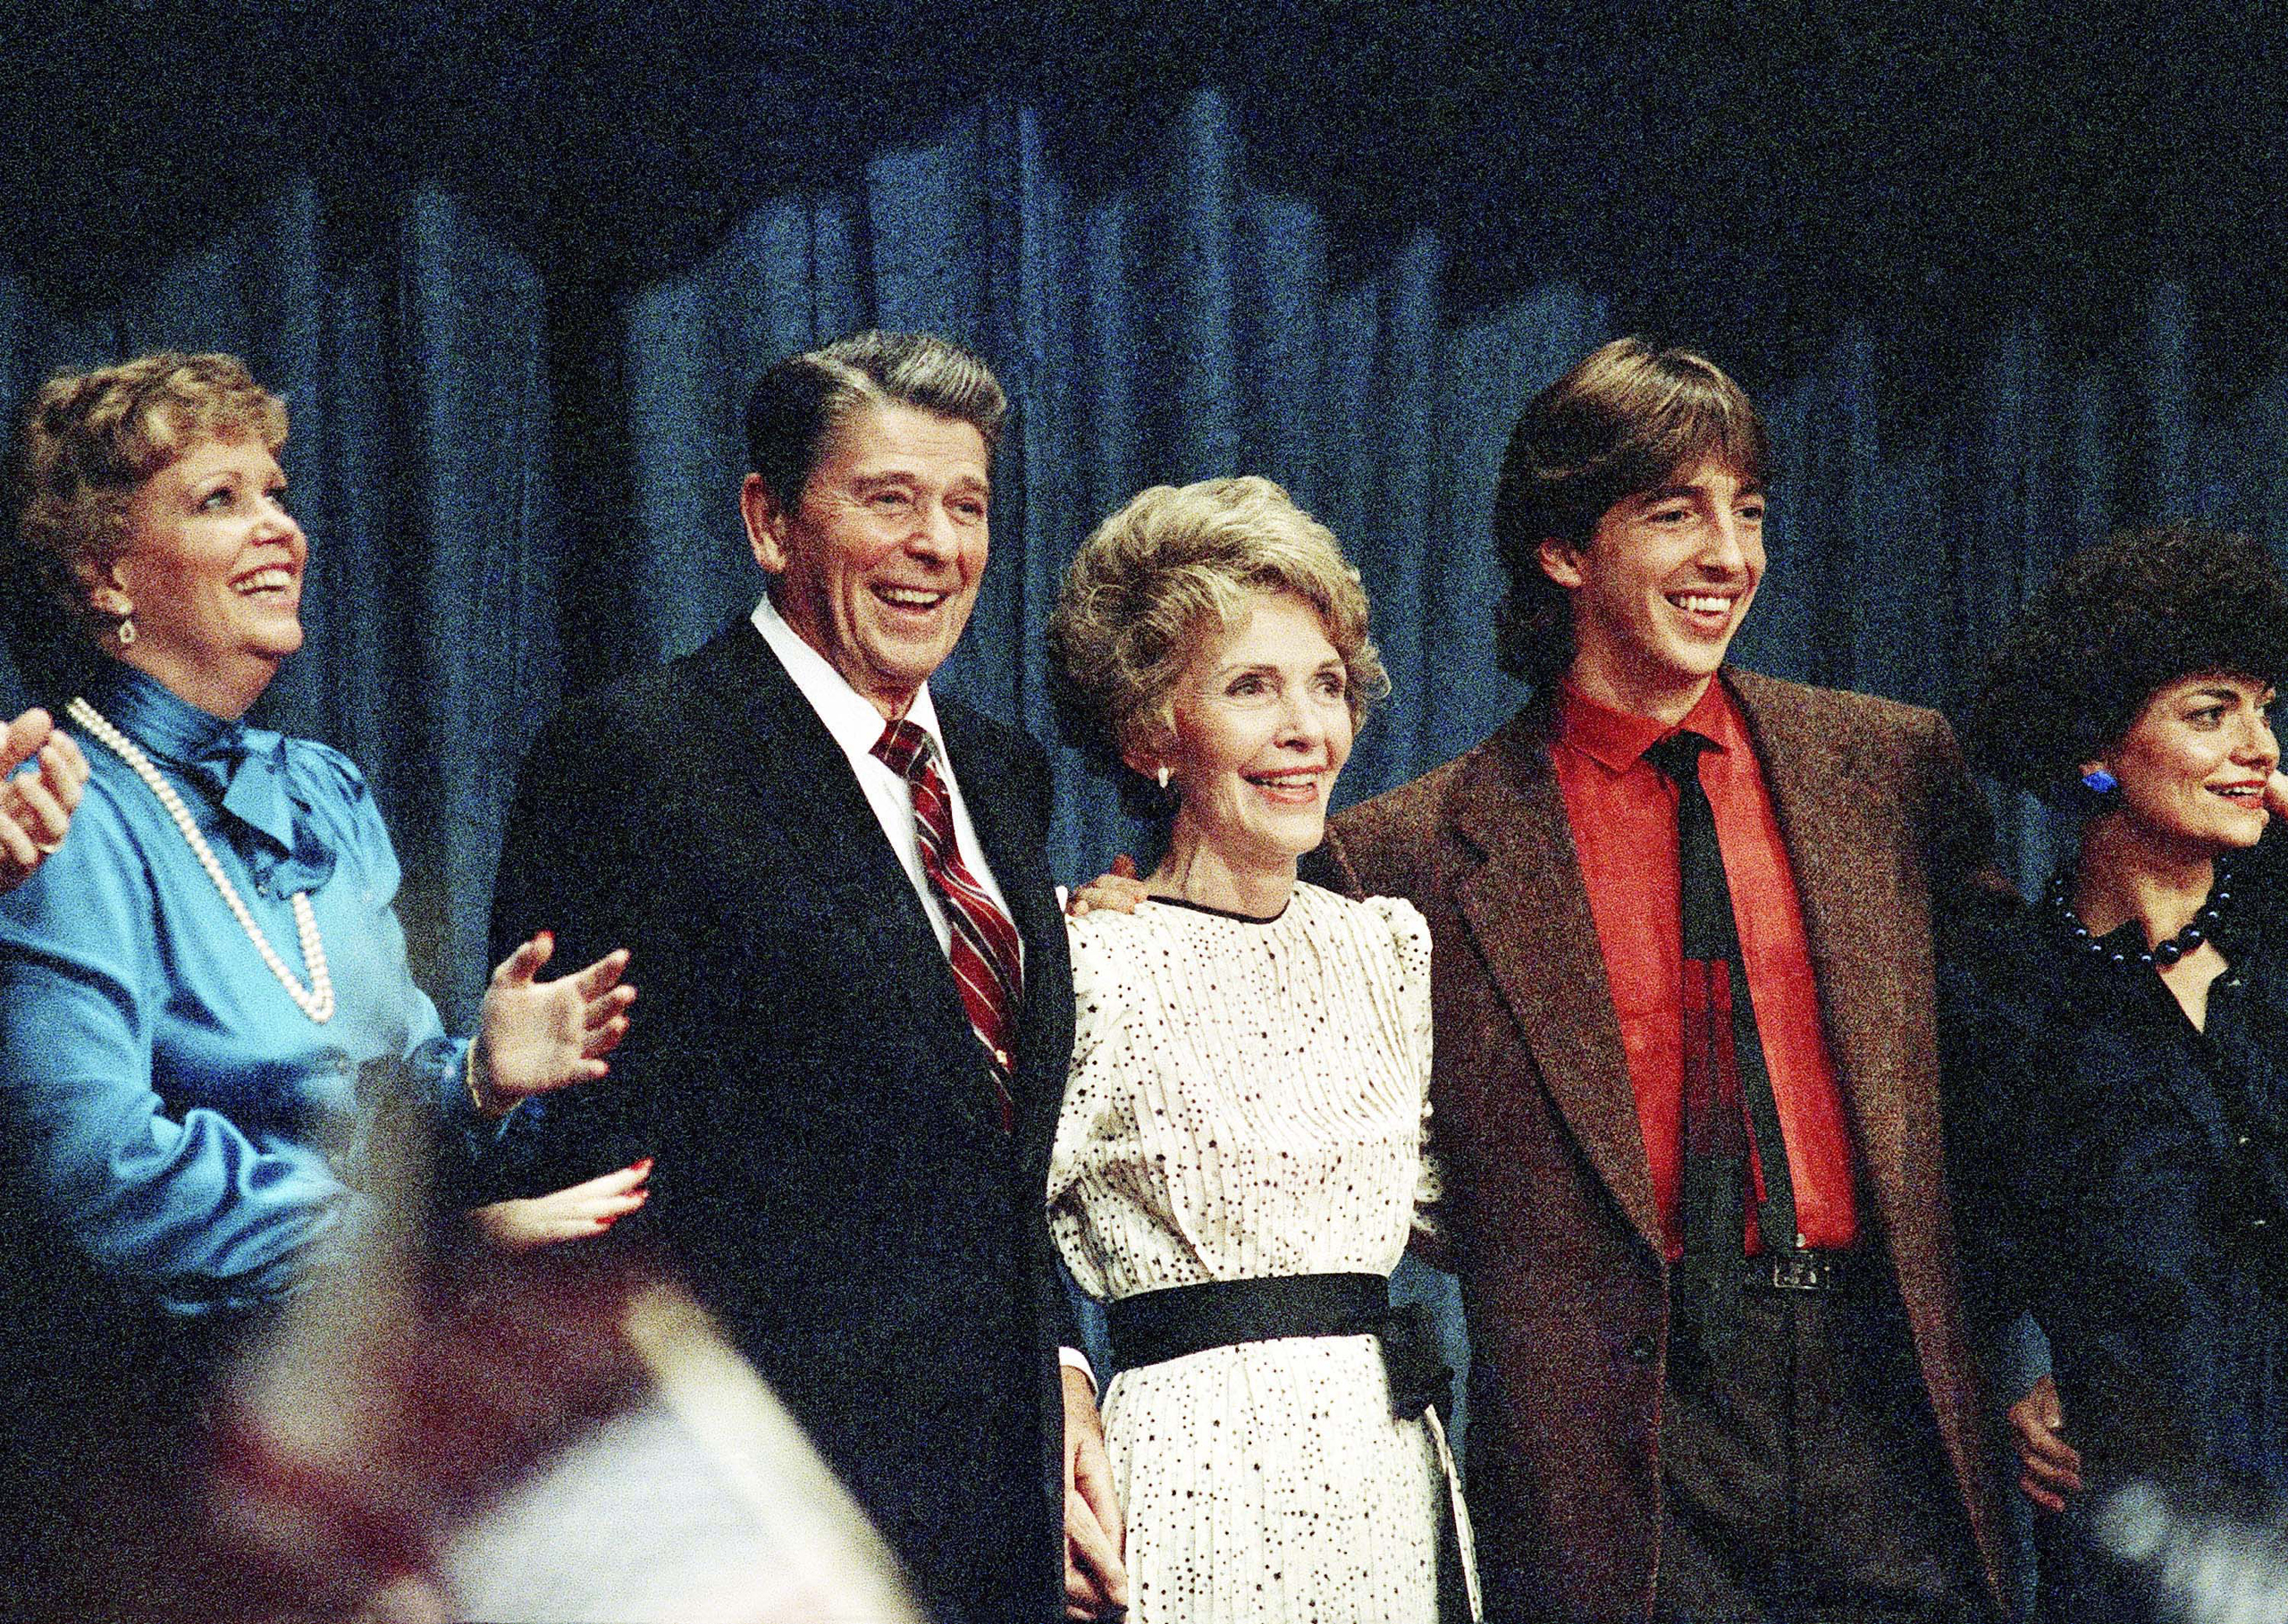 The Reagans  smile and gather together during Ronald Reagan's victory, on Nov. 6, 1984.